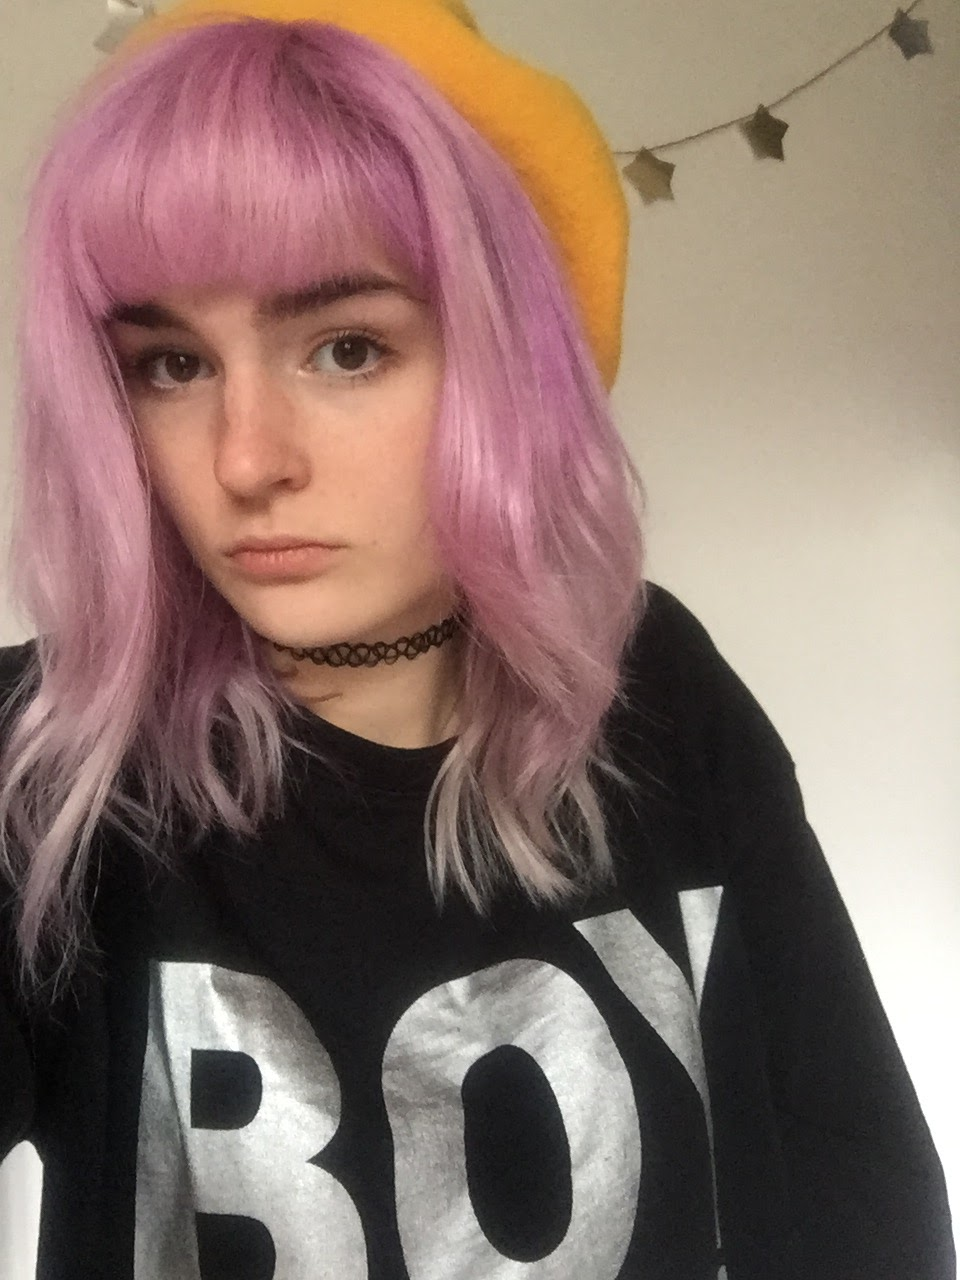 girl with hair dyed with directions lavender